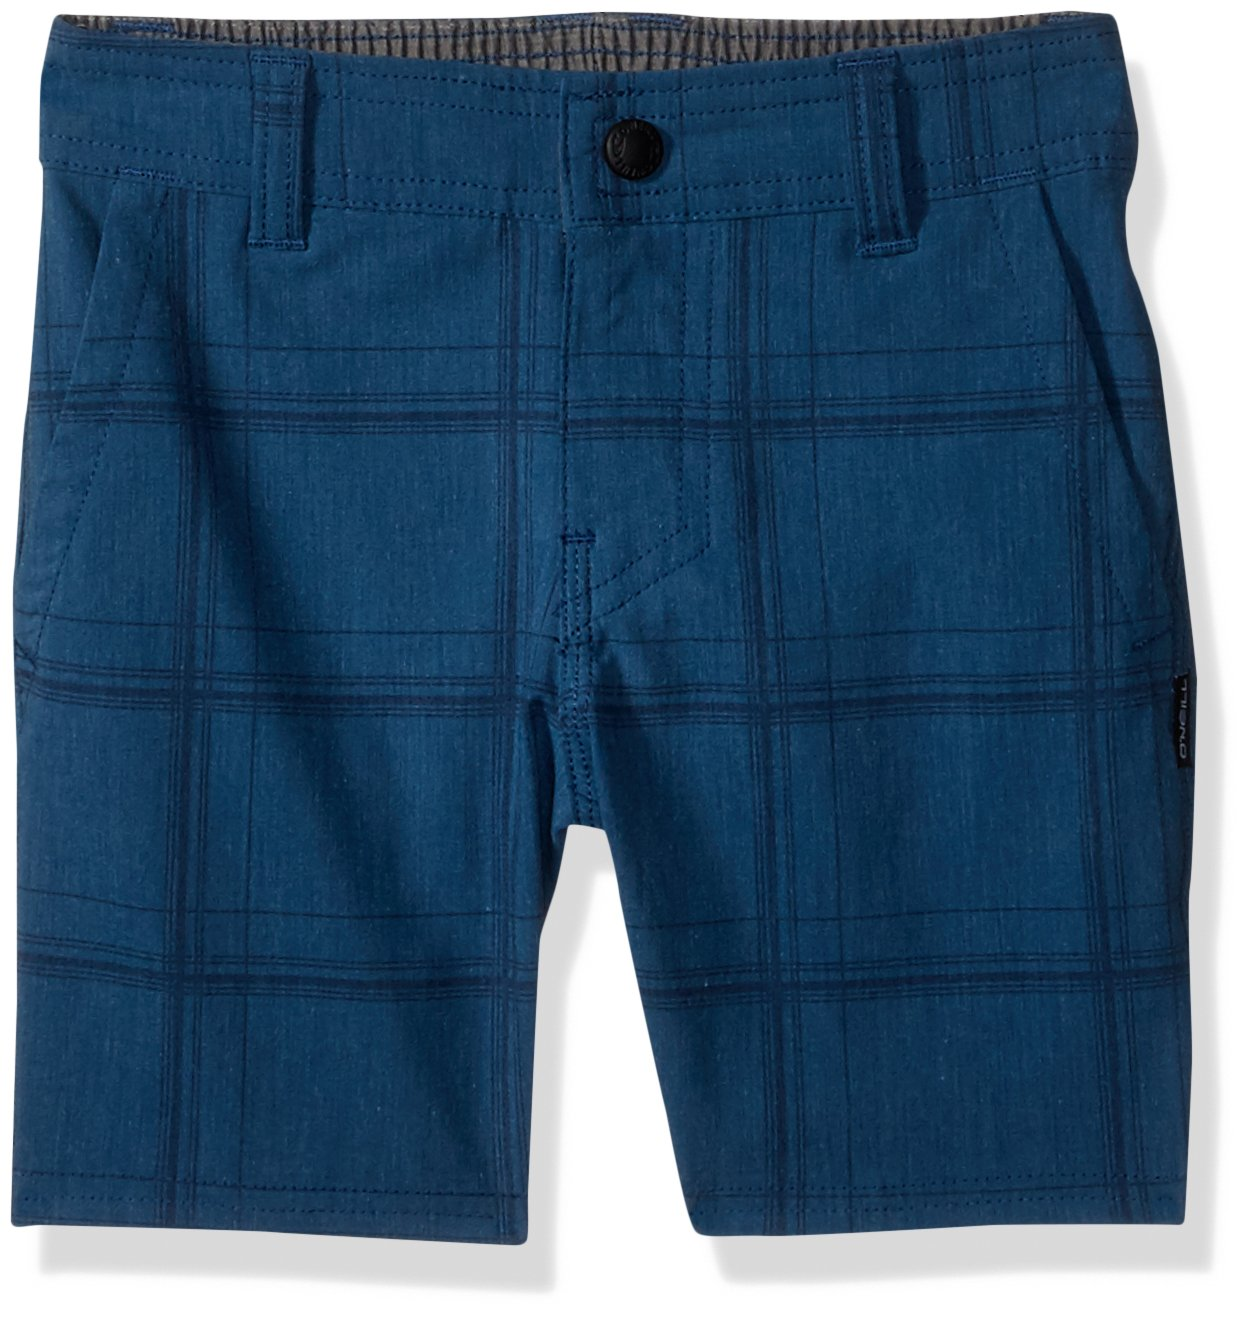 O'Neill Little Boys' Mixed Hybrid Boardshort, Dark Blue, 3T